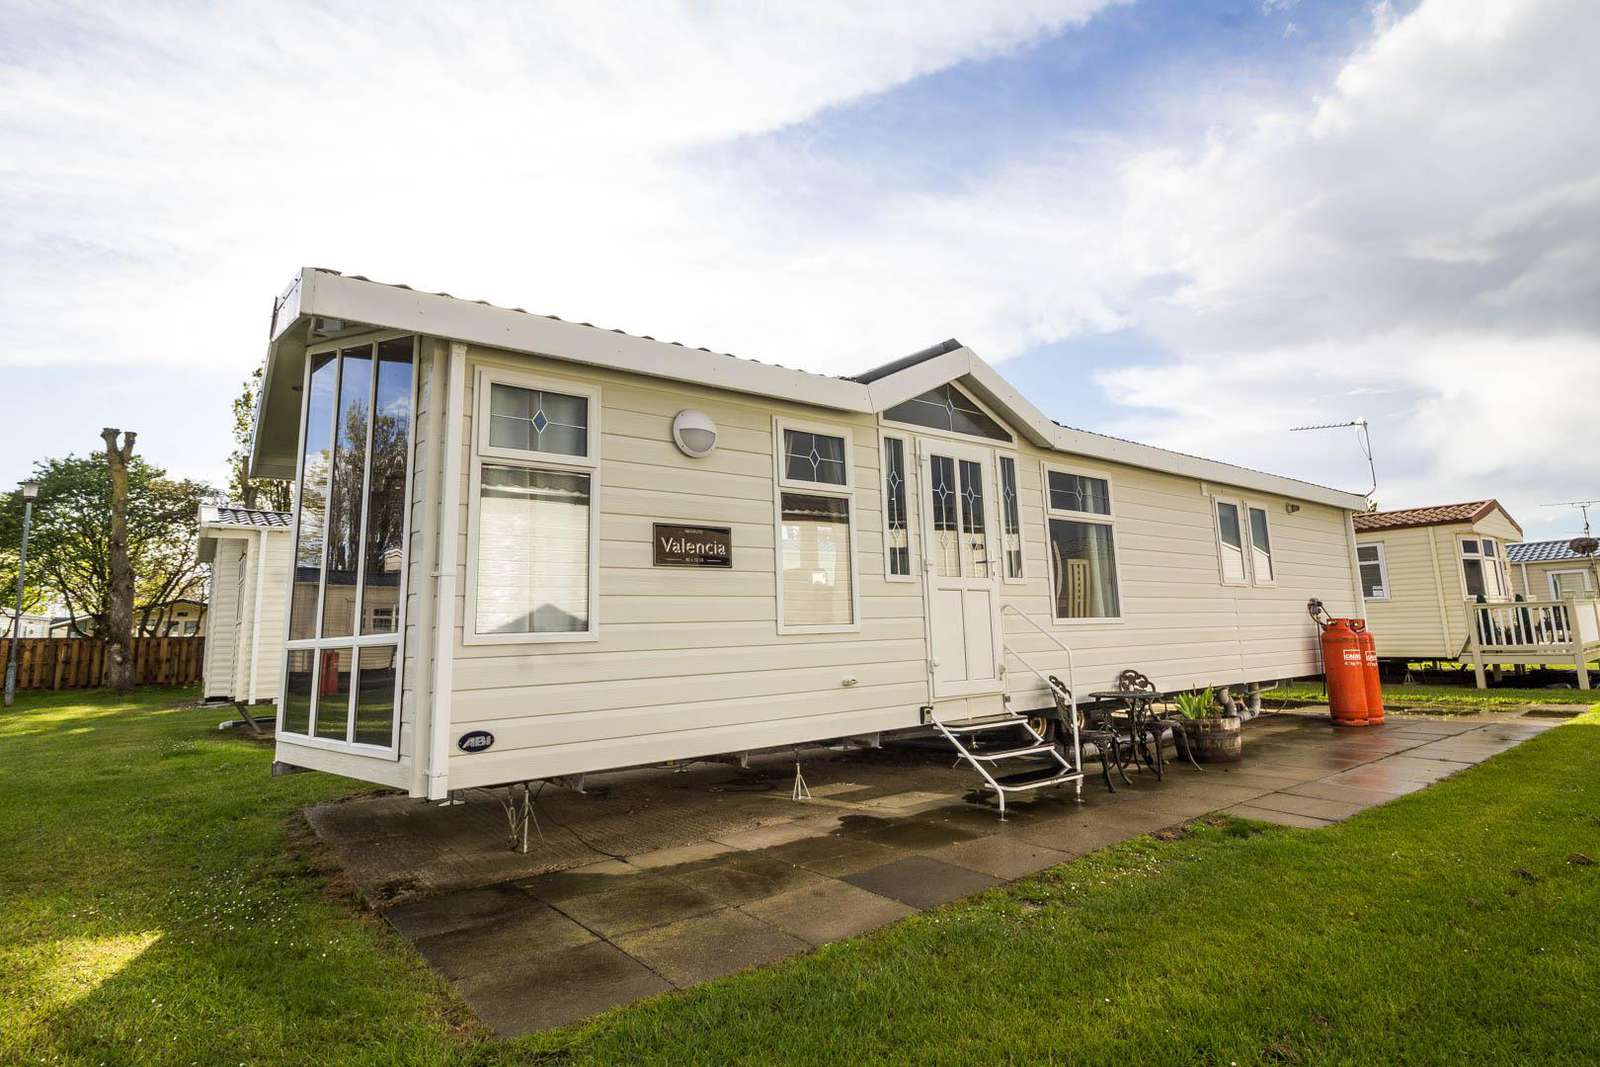 50010L – Lapwing area, 2 bed, 6 berth caravan with D/G & C/H. Diamond rated. - property